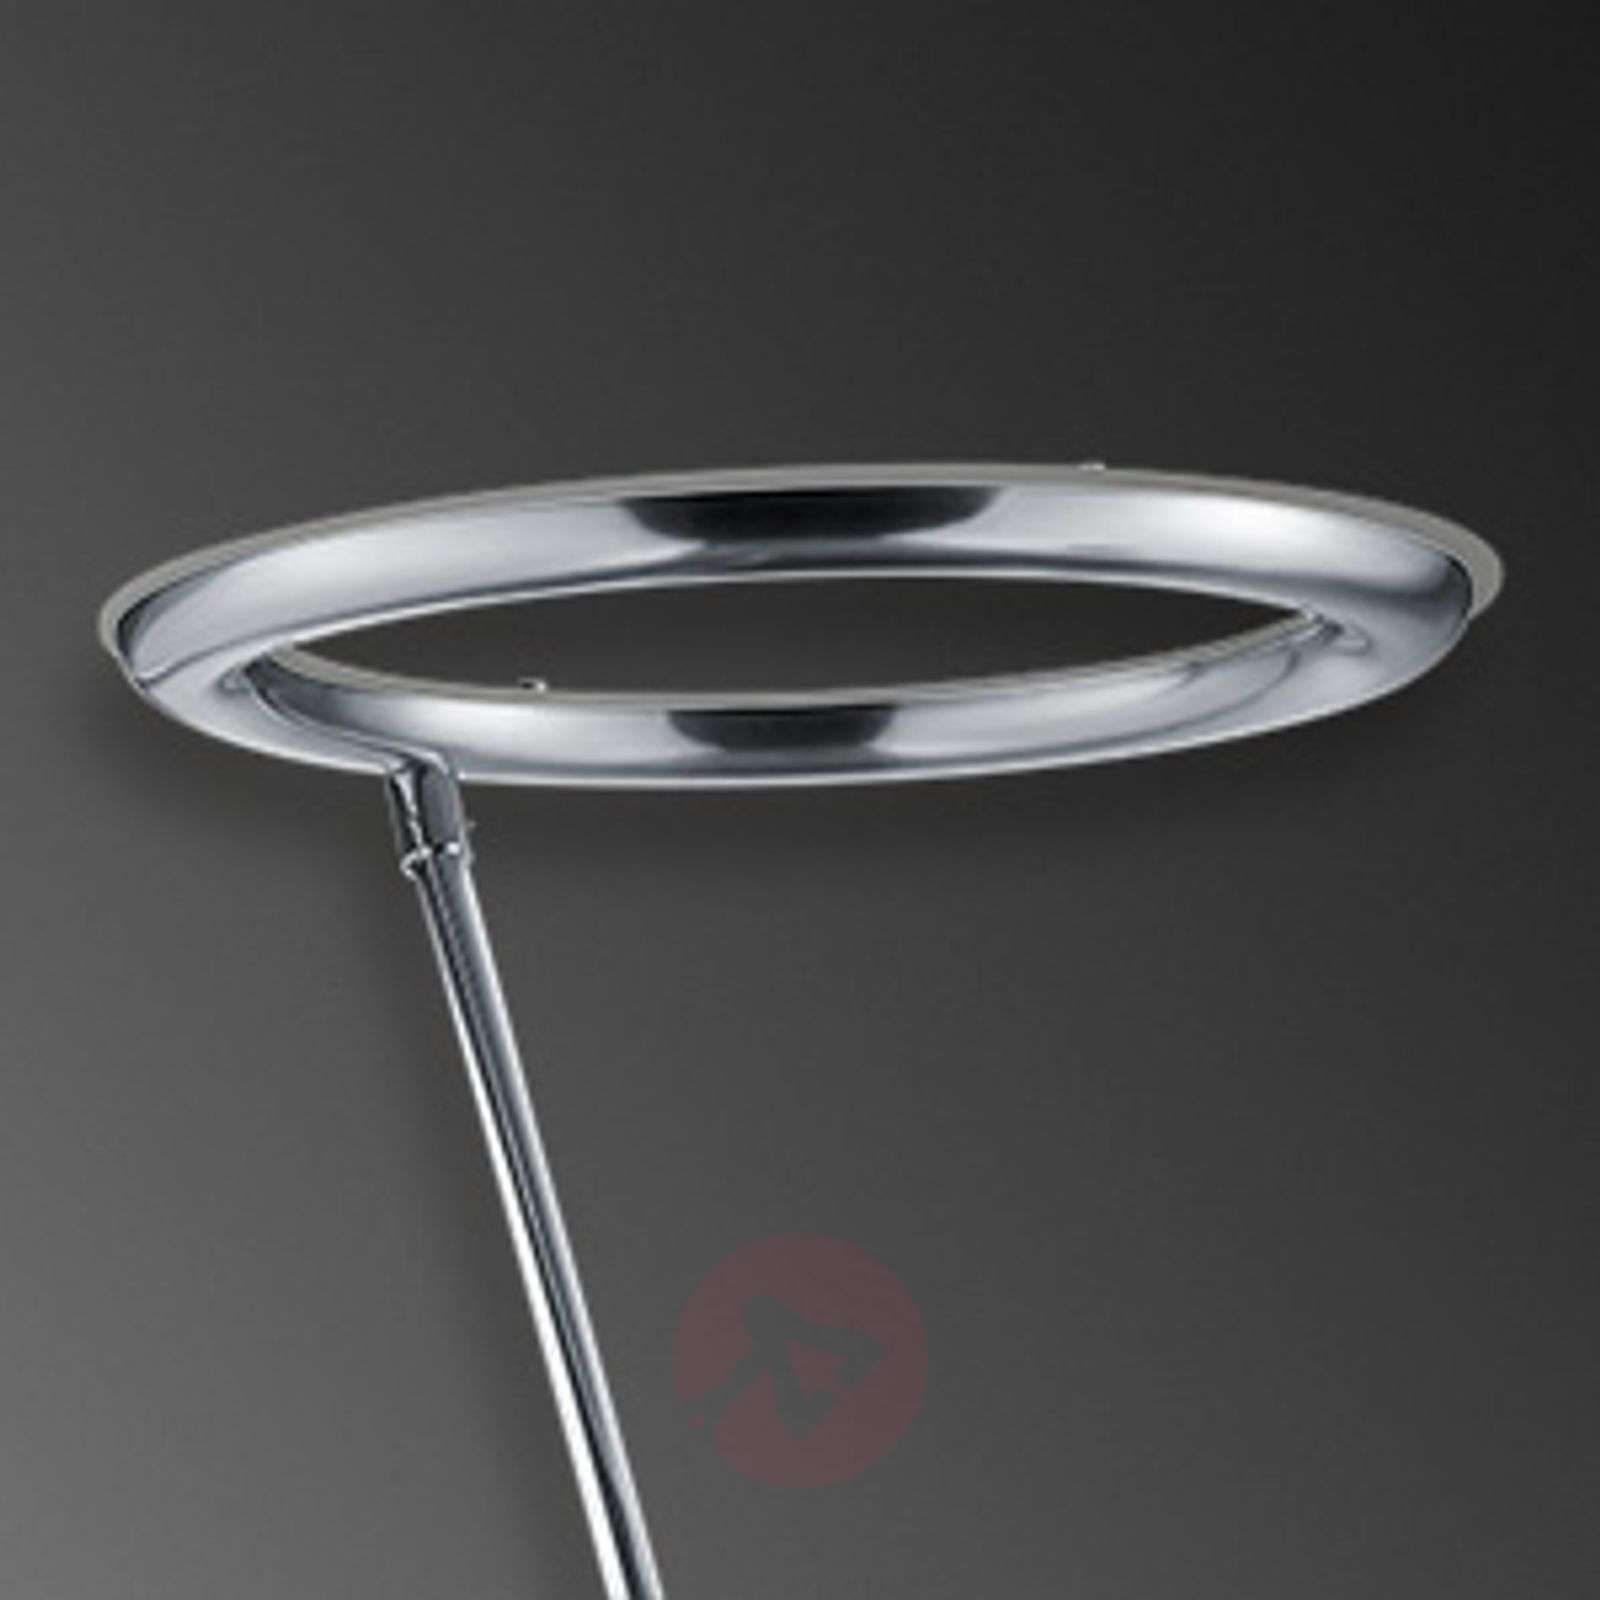 Beautiful Calgary LED ceiling light with dimmer-9005130-01